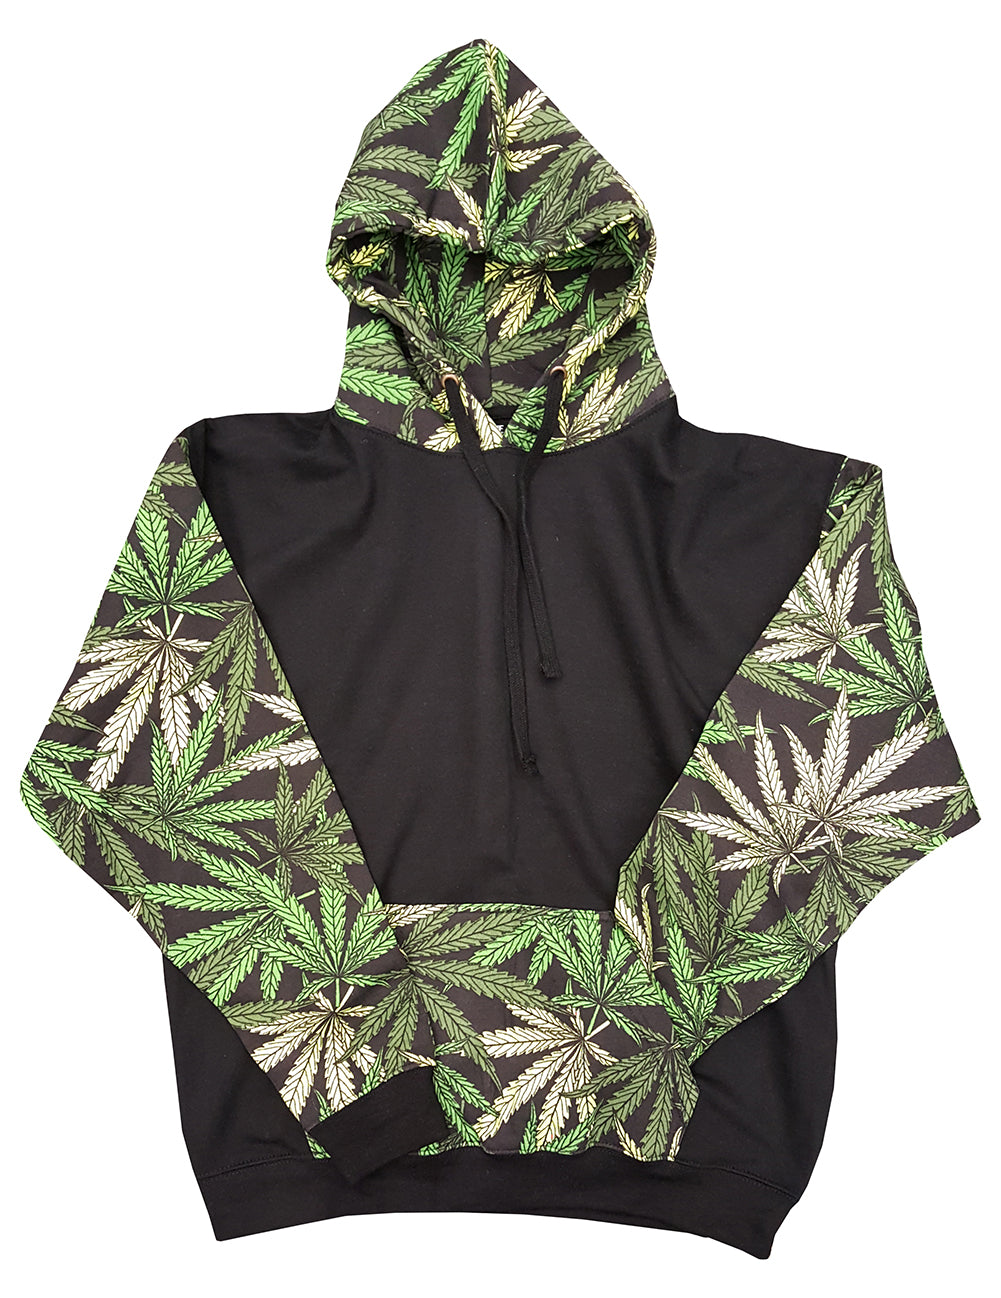 Pot Leaf Collage Adult Hoodie